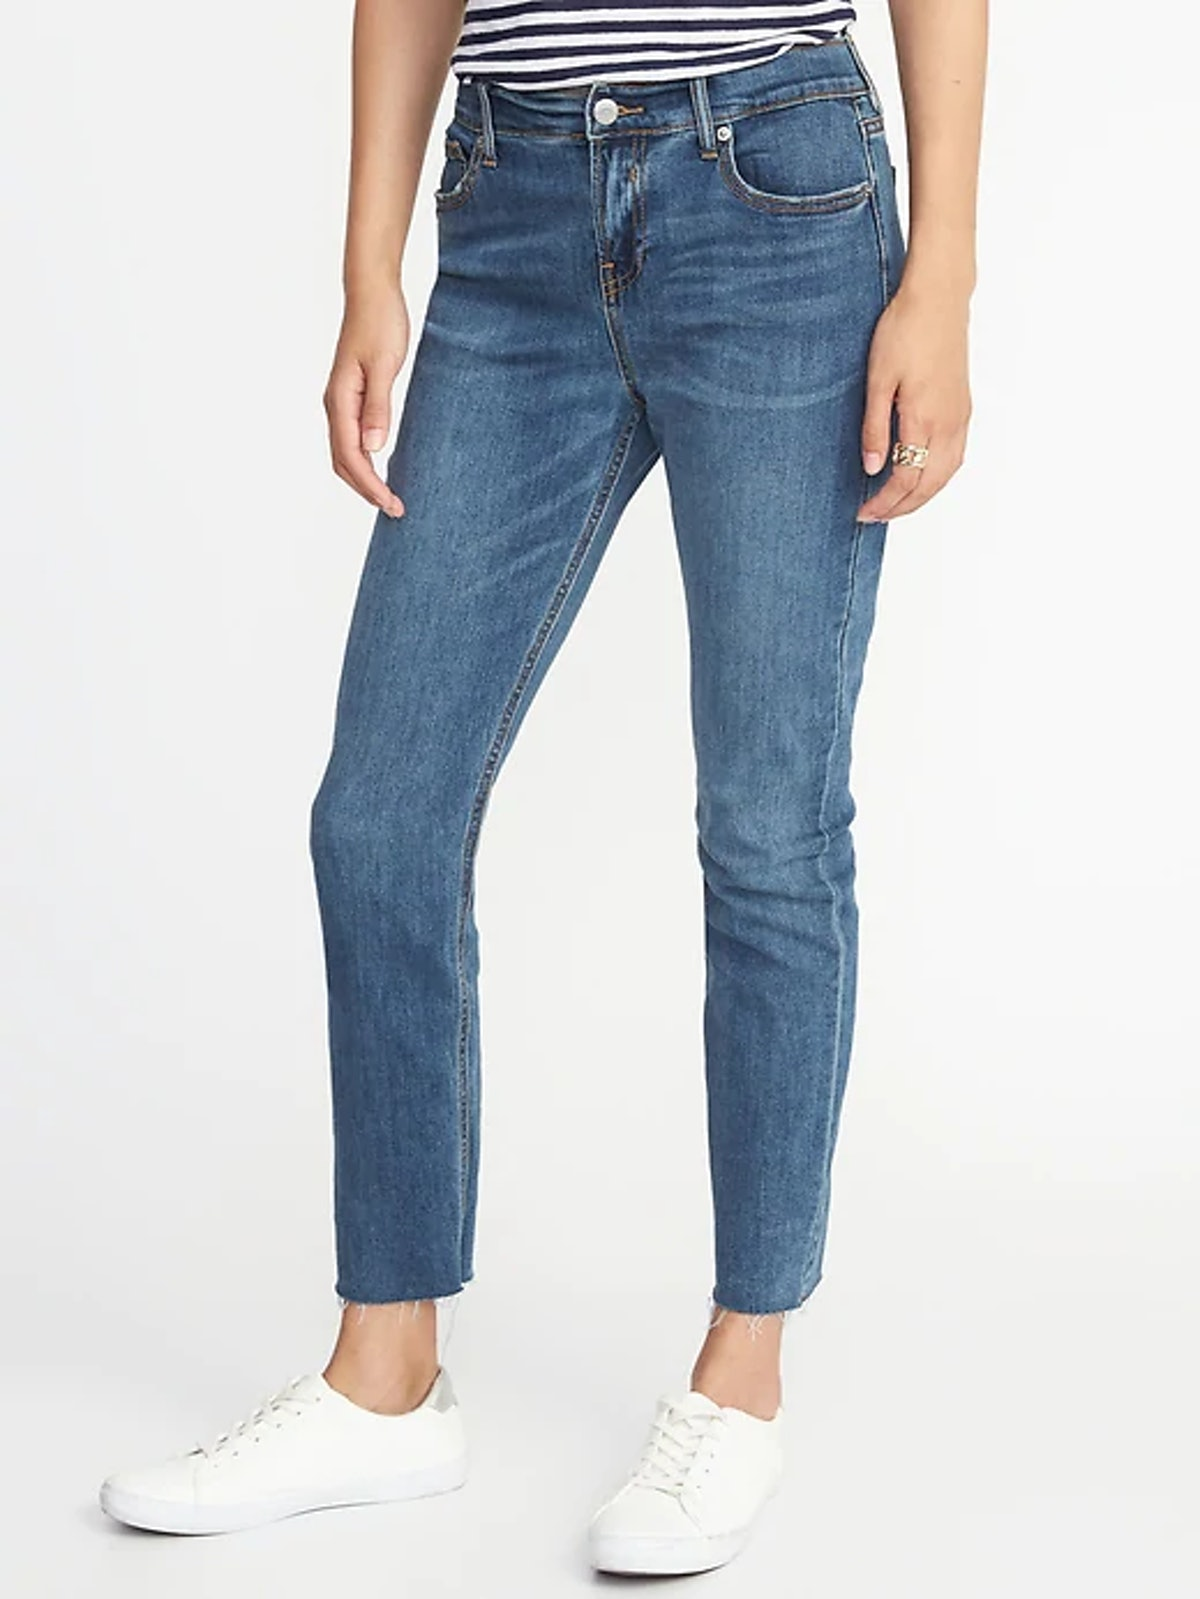 High-Rise The Power Jean, a.k.a. The Perfect Straight for Women